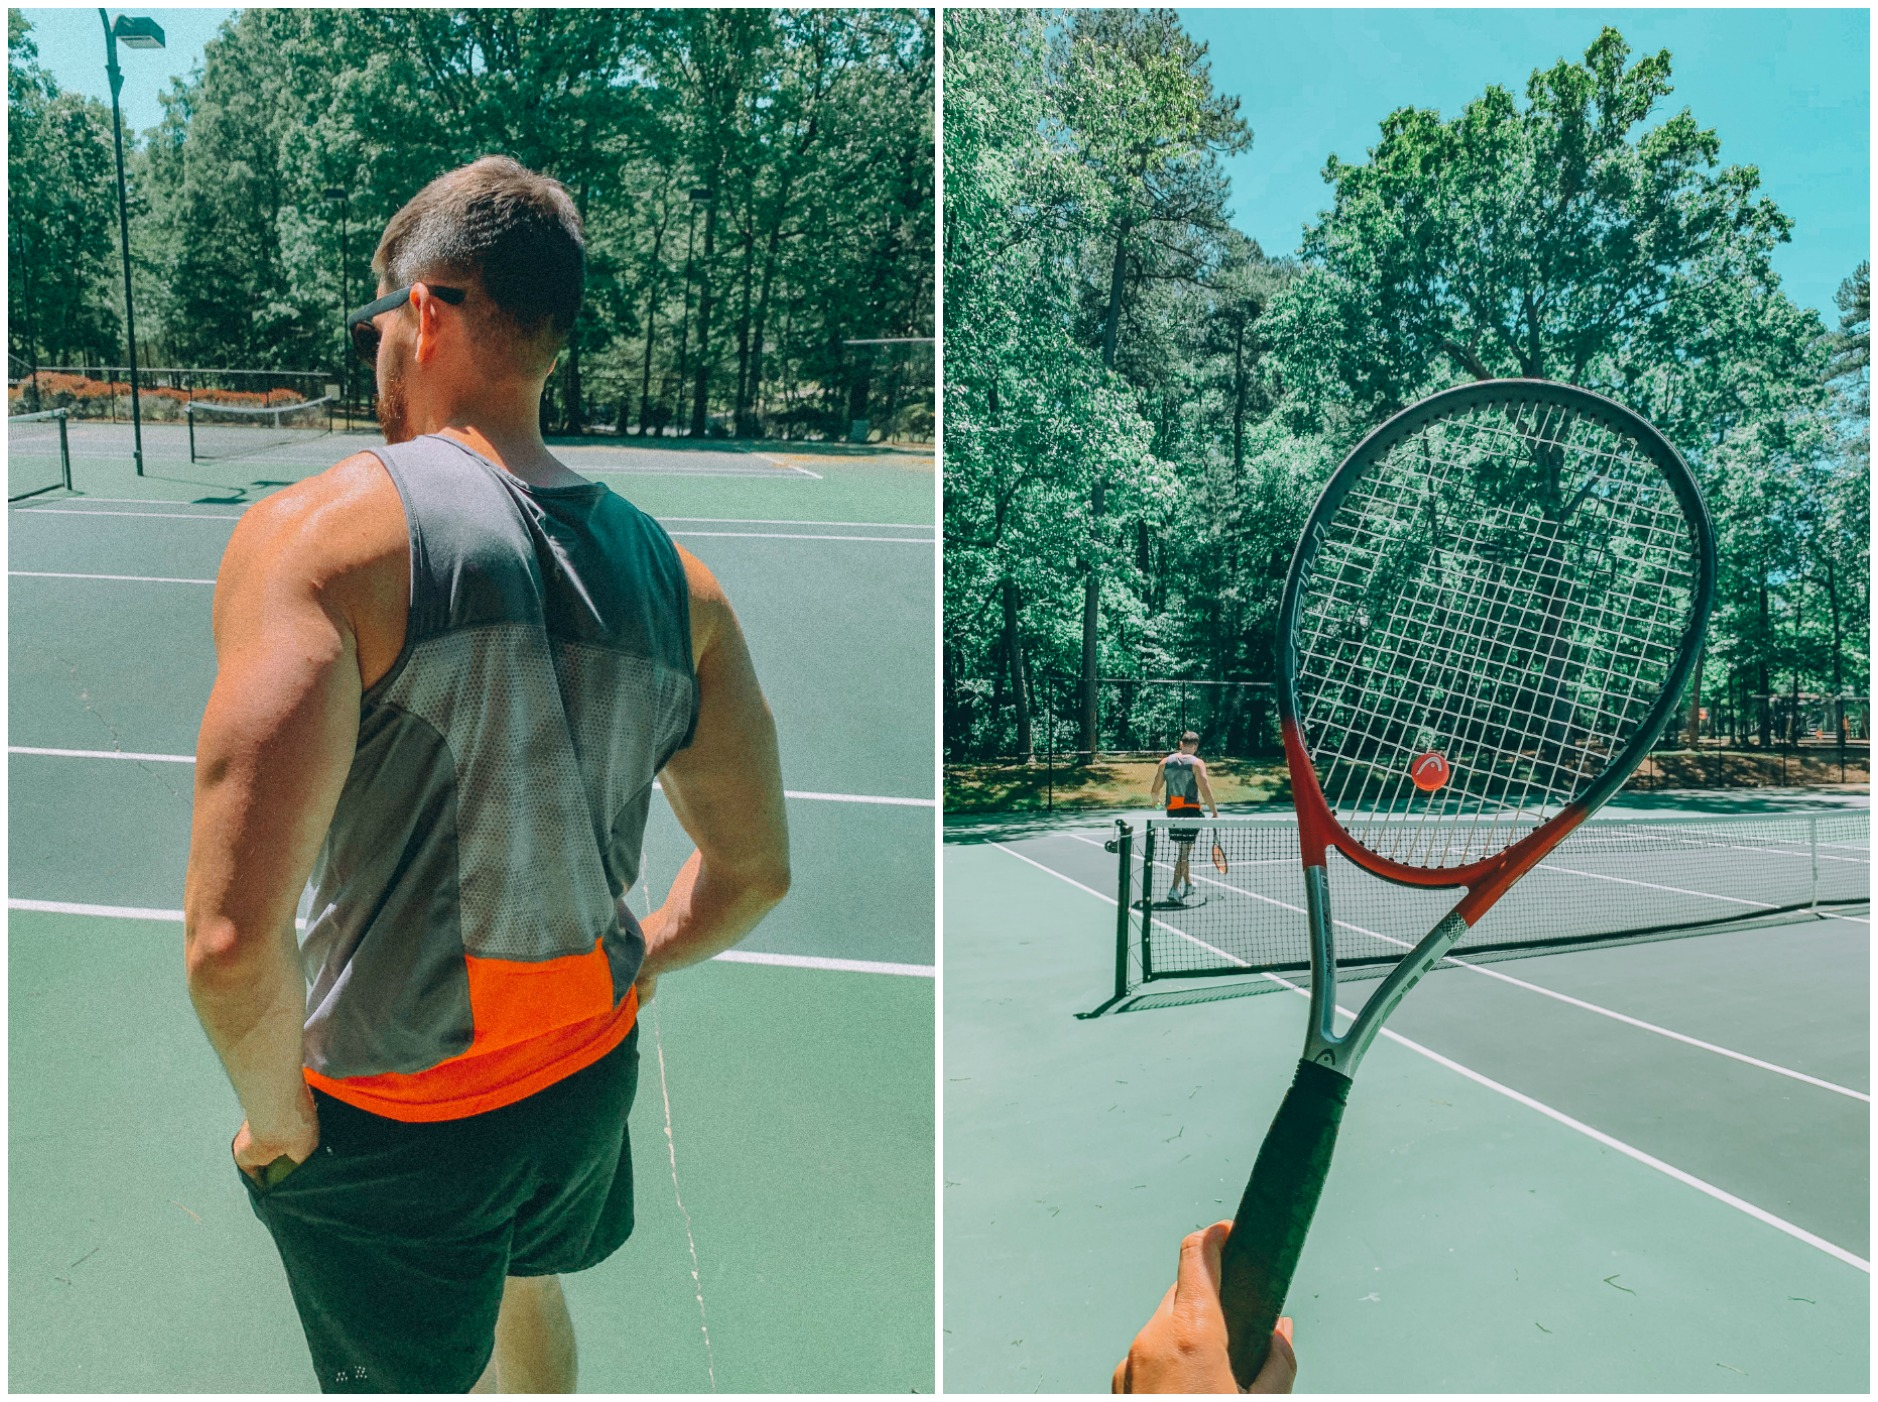 tennis doubles fun blogger lifestyle Charlotte fort mill rock hill North Carolina South Carolina fewell fun tennis couple blog